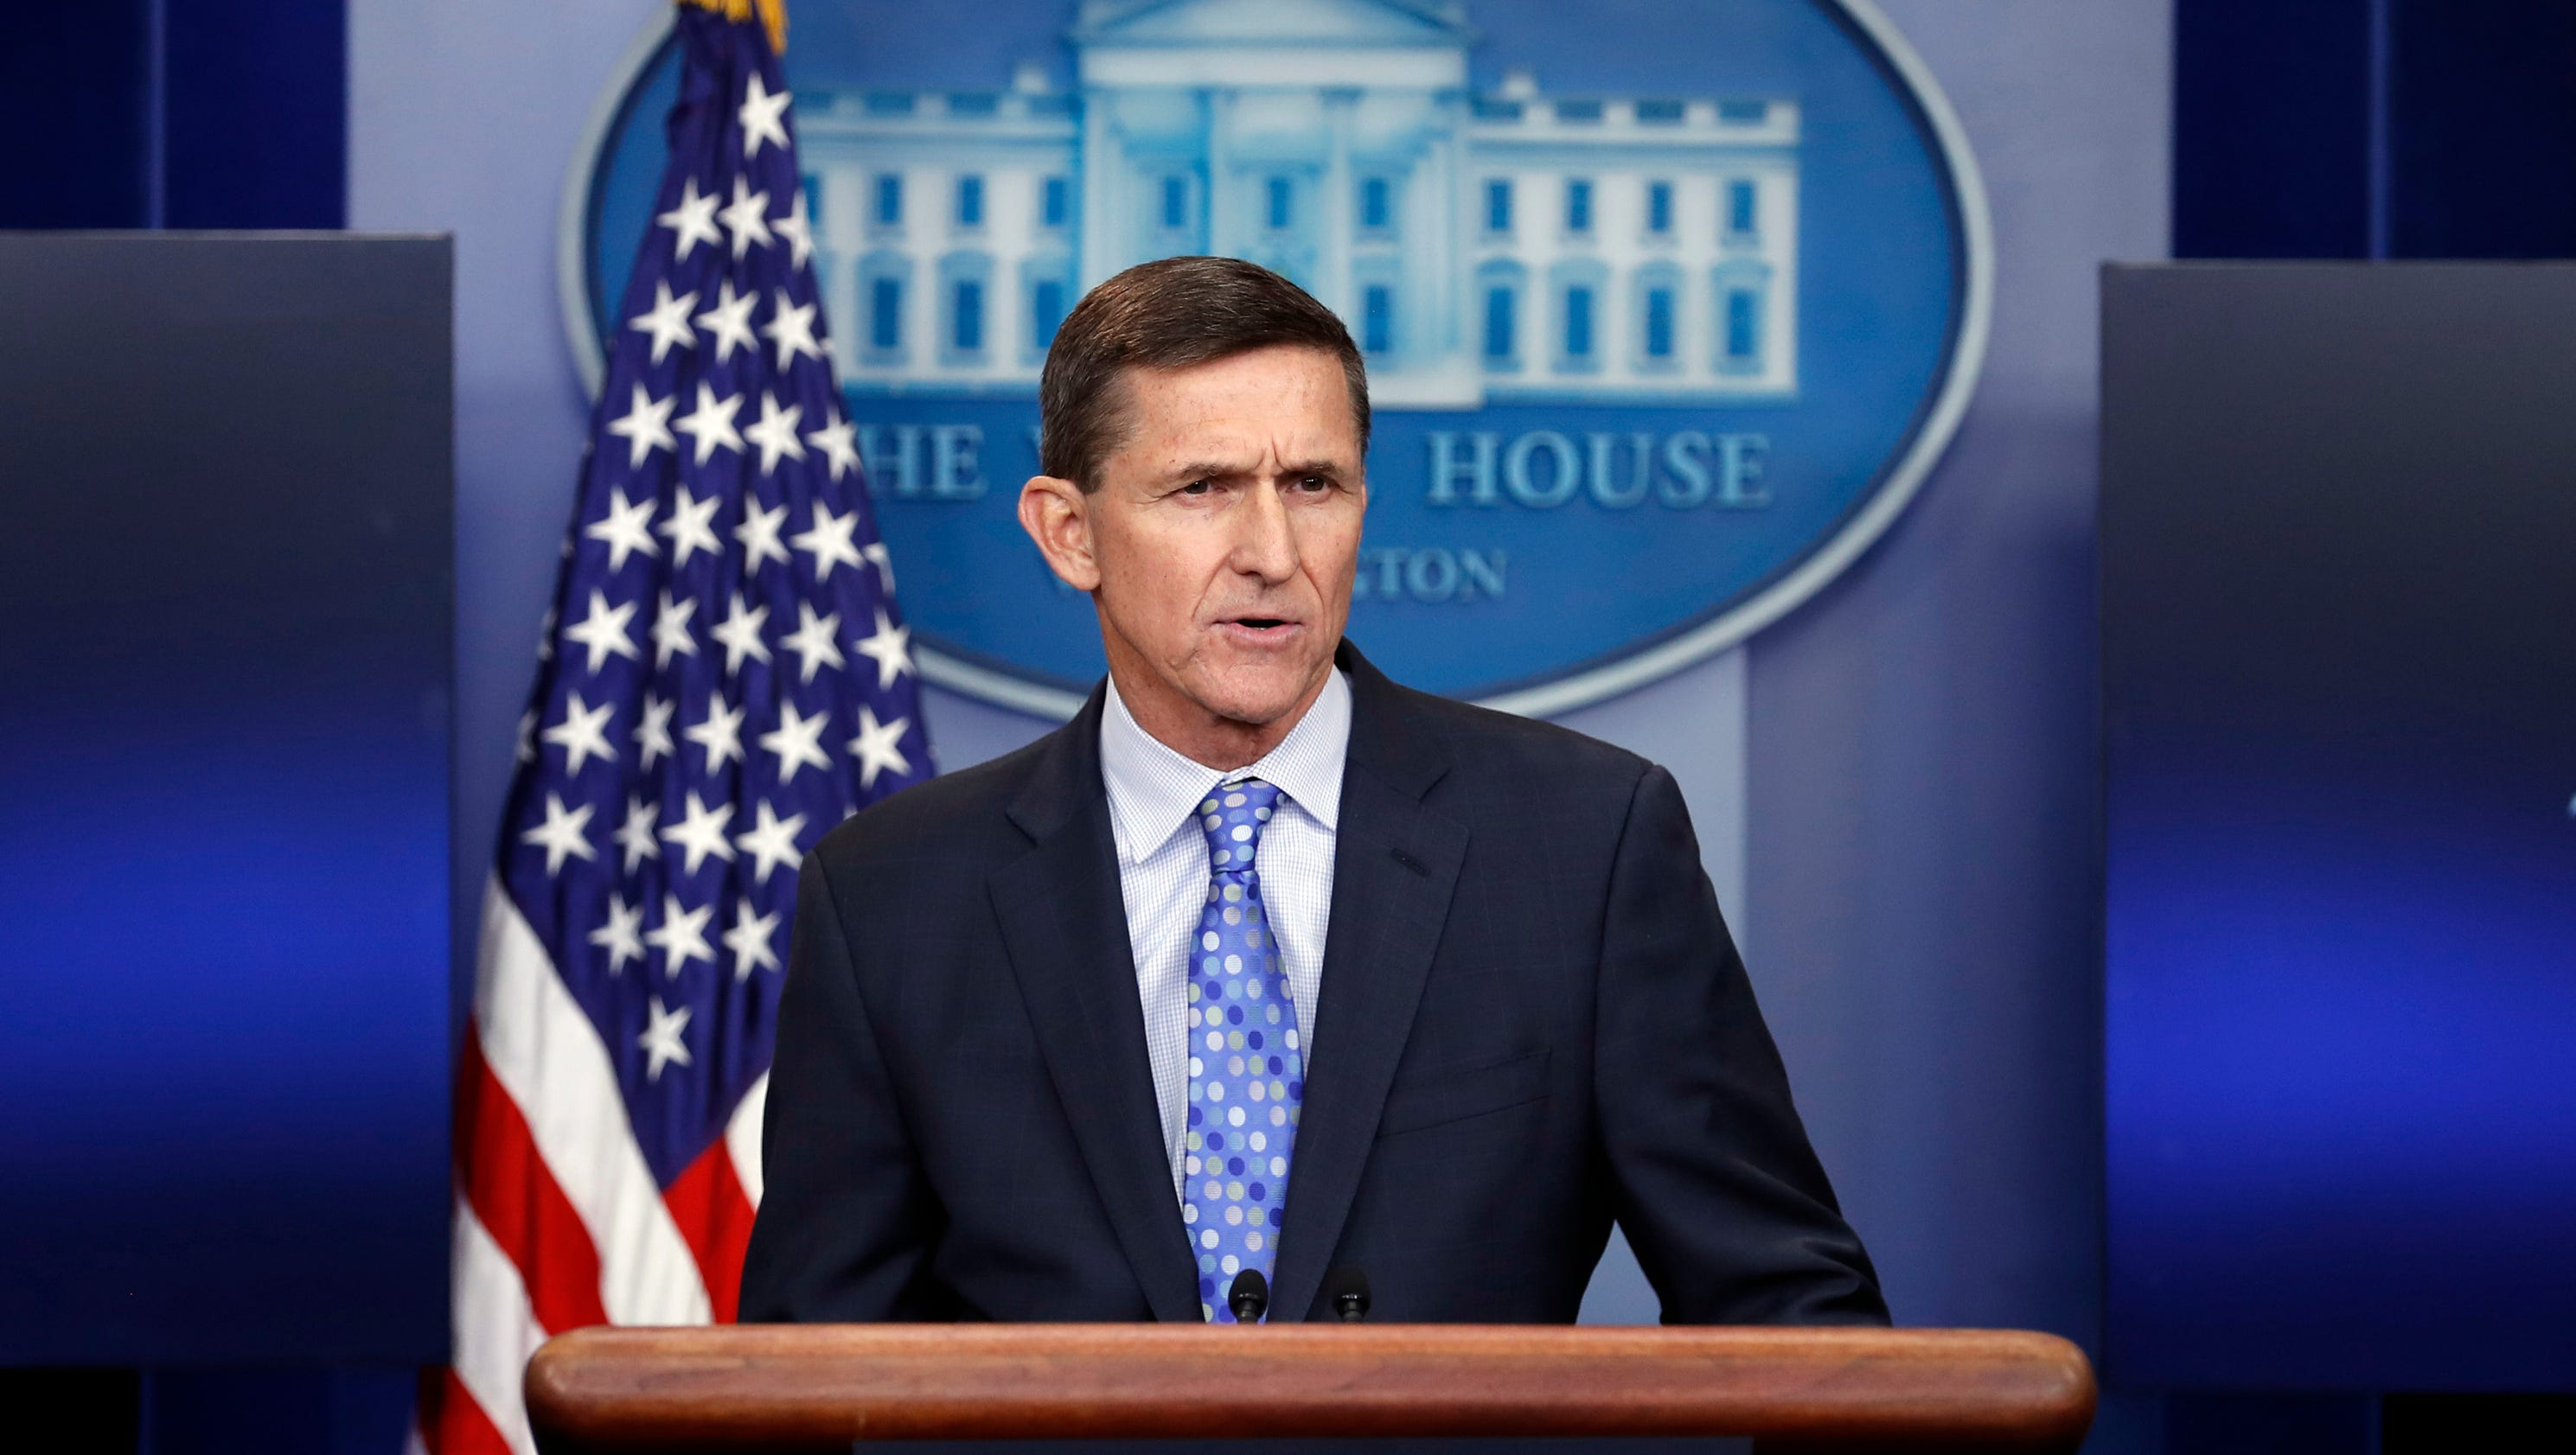 Pentagon opens probe of Michael Flynn, fired national security adviser